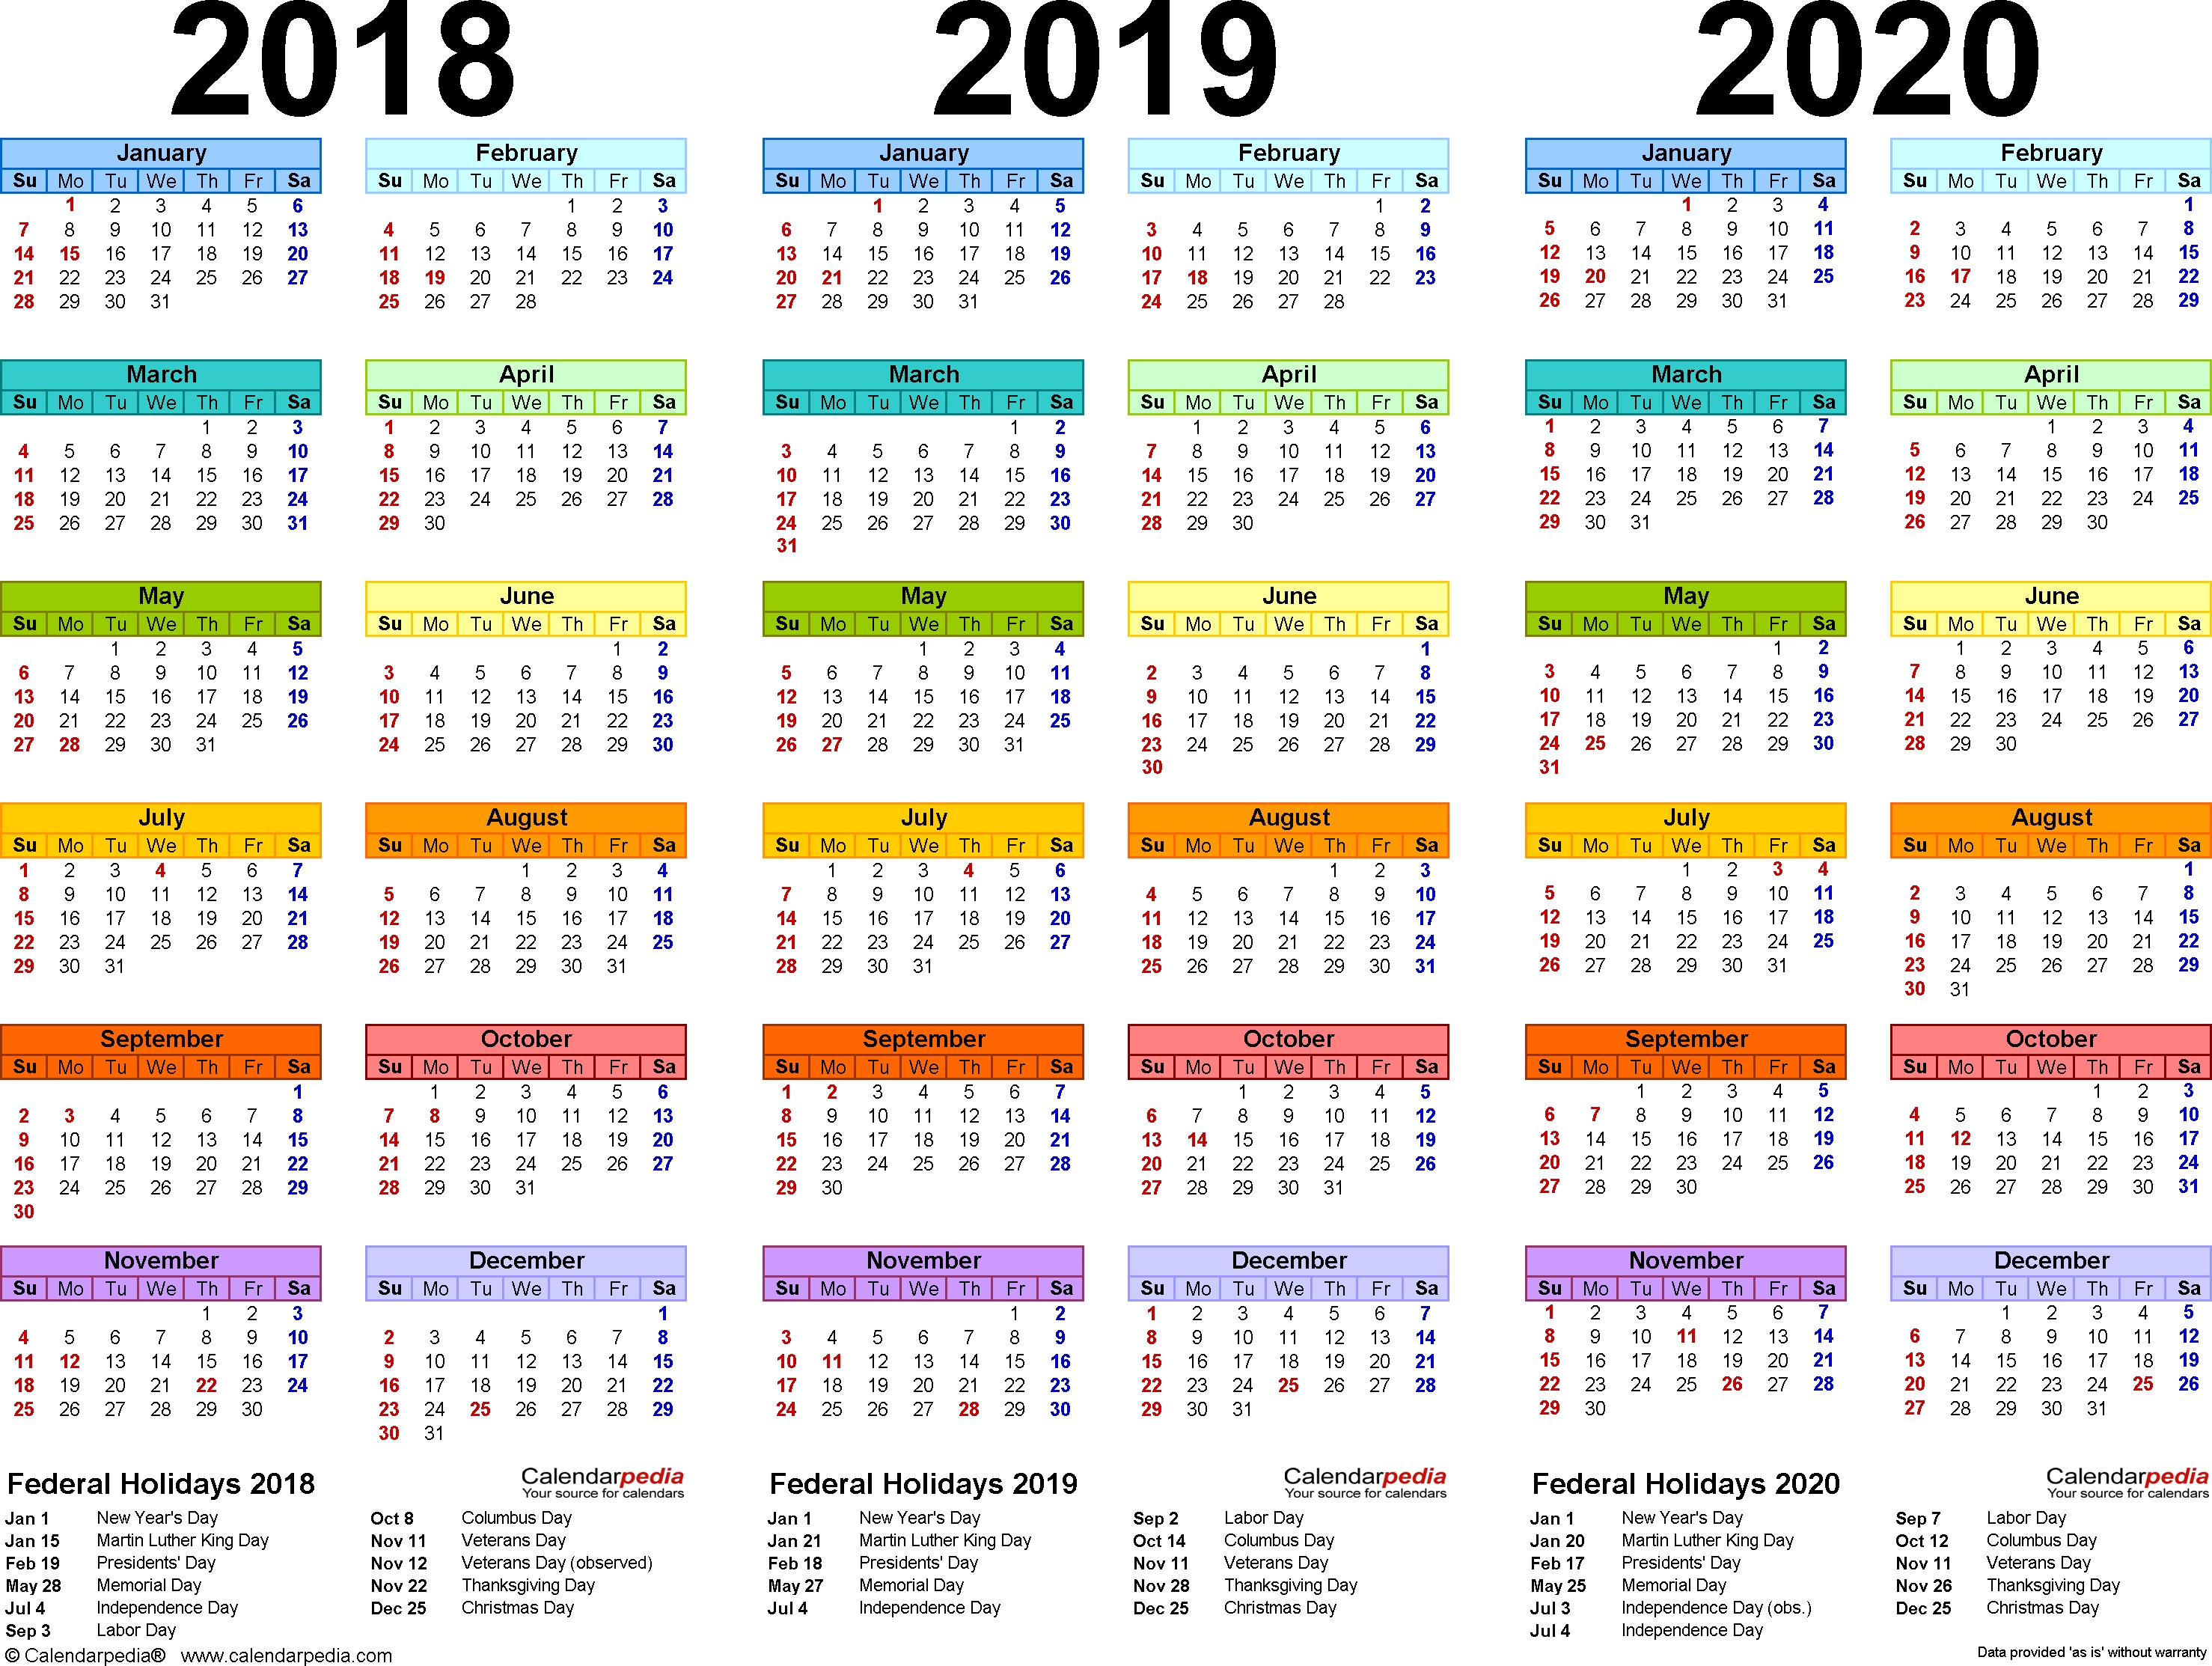 2019 Yearly Calendar - Free Download | Printables | Calendar 2020 Extraordinary Free Printable 2020 Yearly Calendar With Holidays